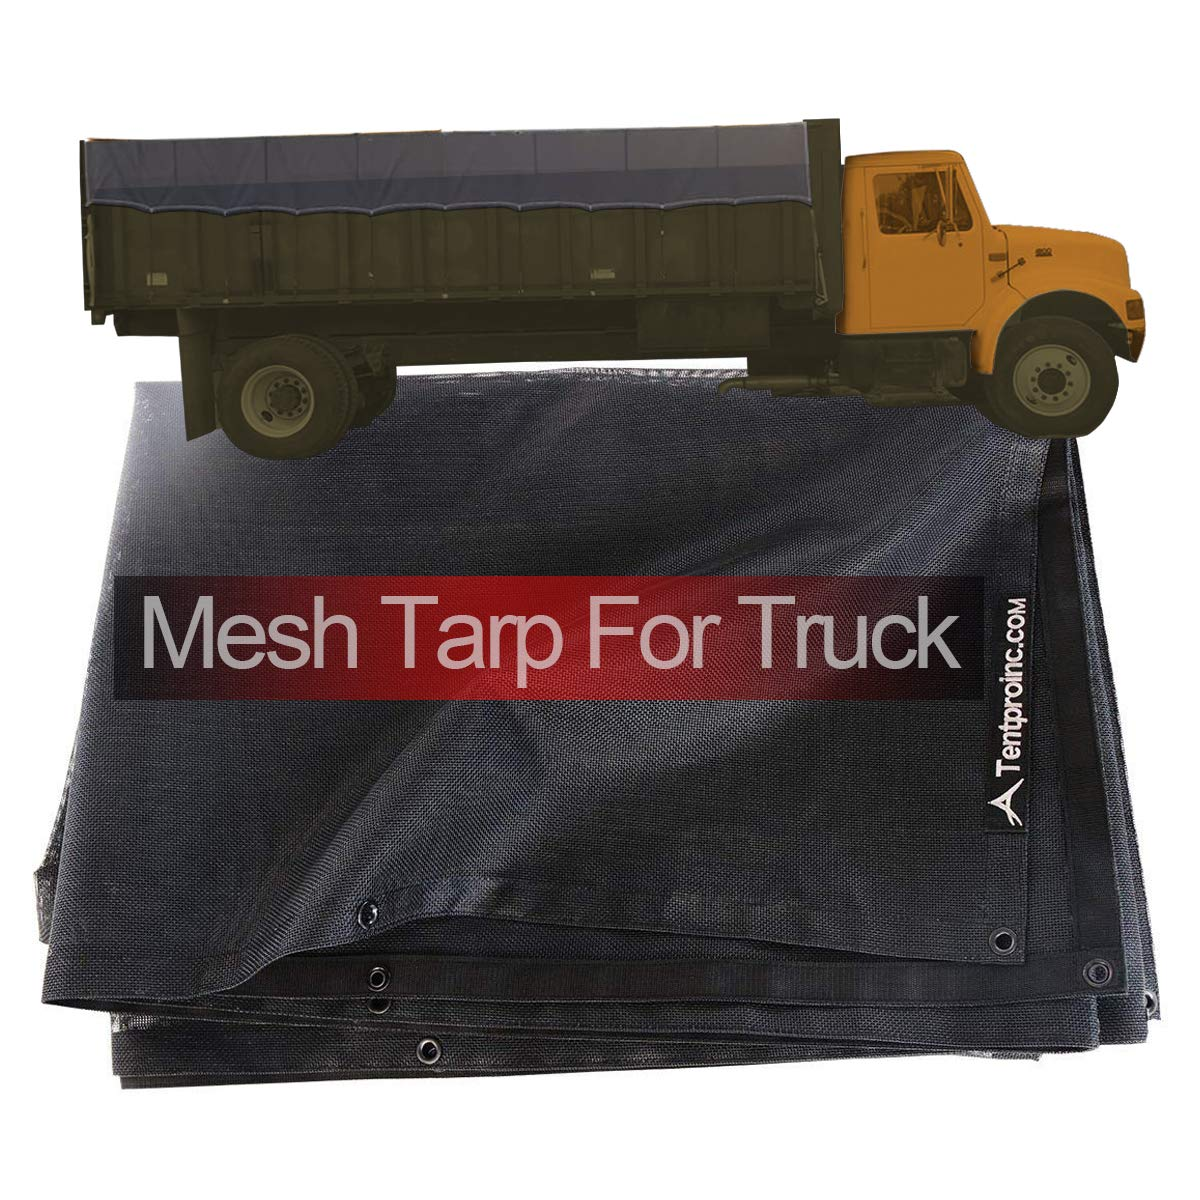 Truck Mesh Tarp 8'X12' (Black) Tentproinc Heavy Duty Cover Top Quality Reinforced Double Needle Stitch Webbing Ripping and Tearing Stop, No Rust Thicker Brass Grommets - 3 Years Limited Warranty by Tentproinc